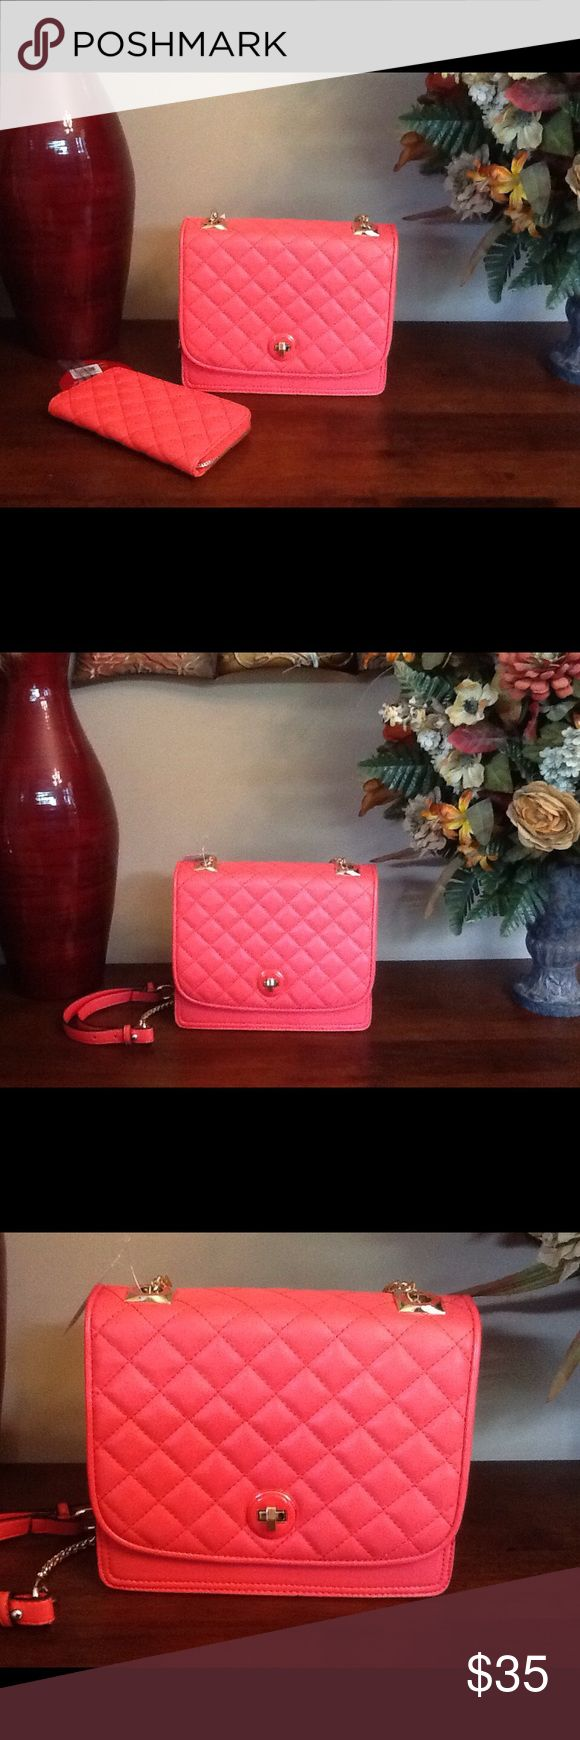 Coral Shoulder Handbag with Wallet This is a beautiful shoulder handbag that comes with a wallet and is still New with Tags. The magazine is used to show the Size of the handbag!! **Reasonable Offers Only!!** Bags Shoulder Bags